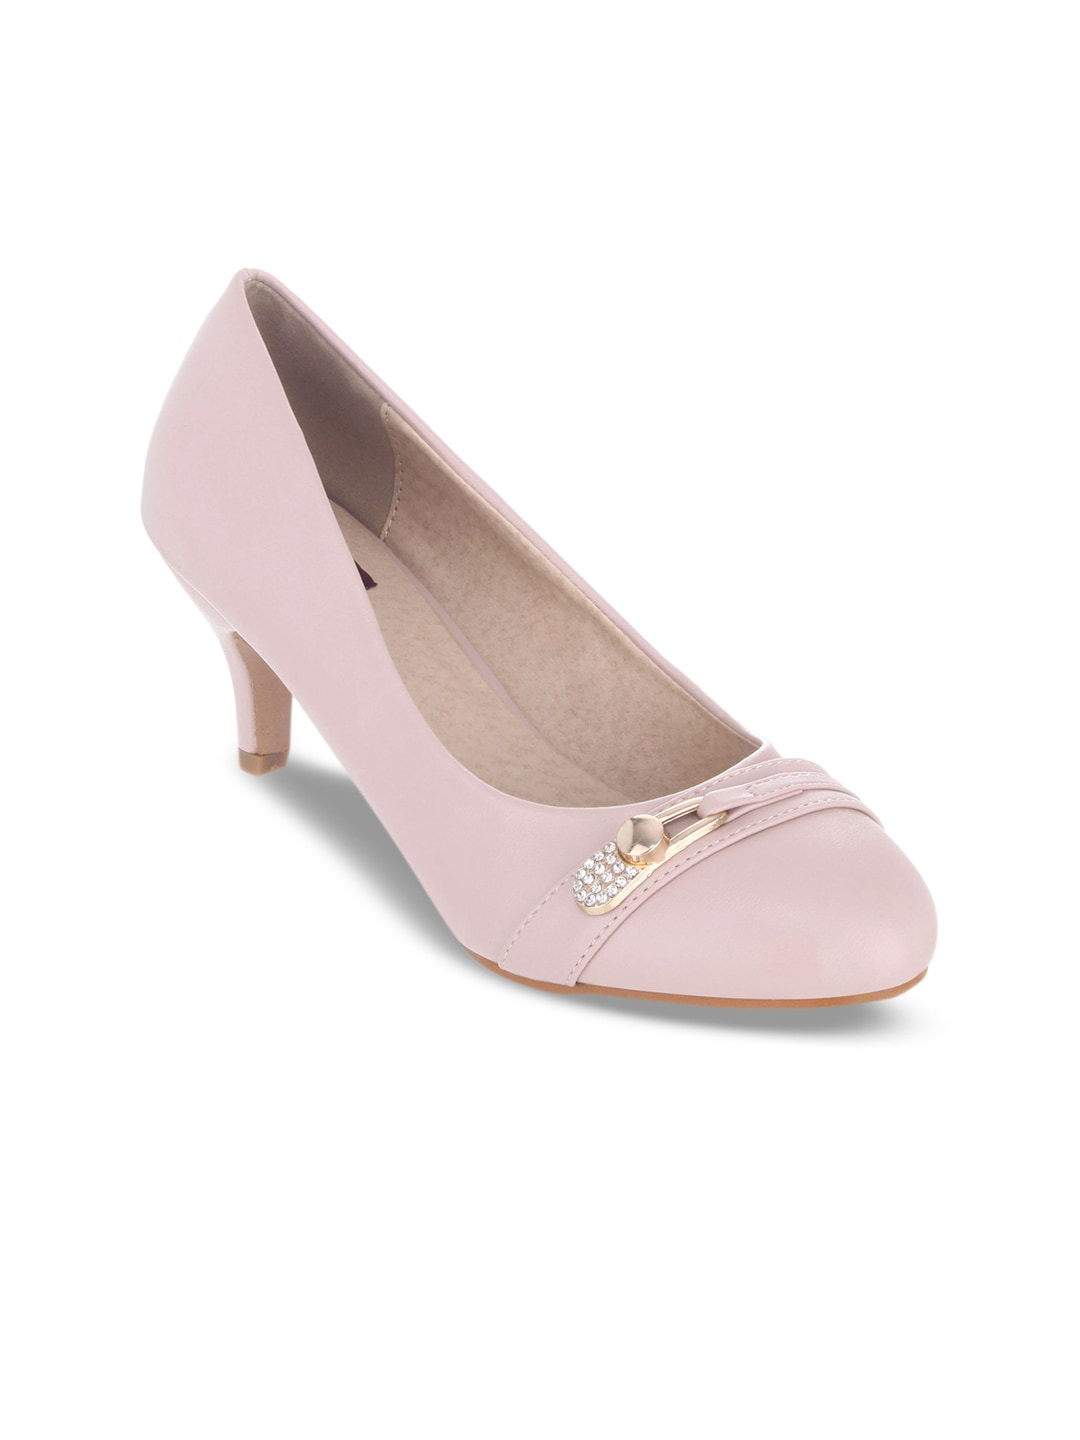 SHUZ TOUCH Women Pink Solid Pumps image